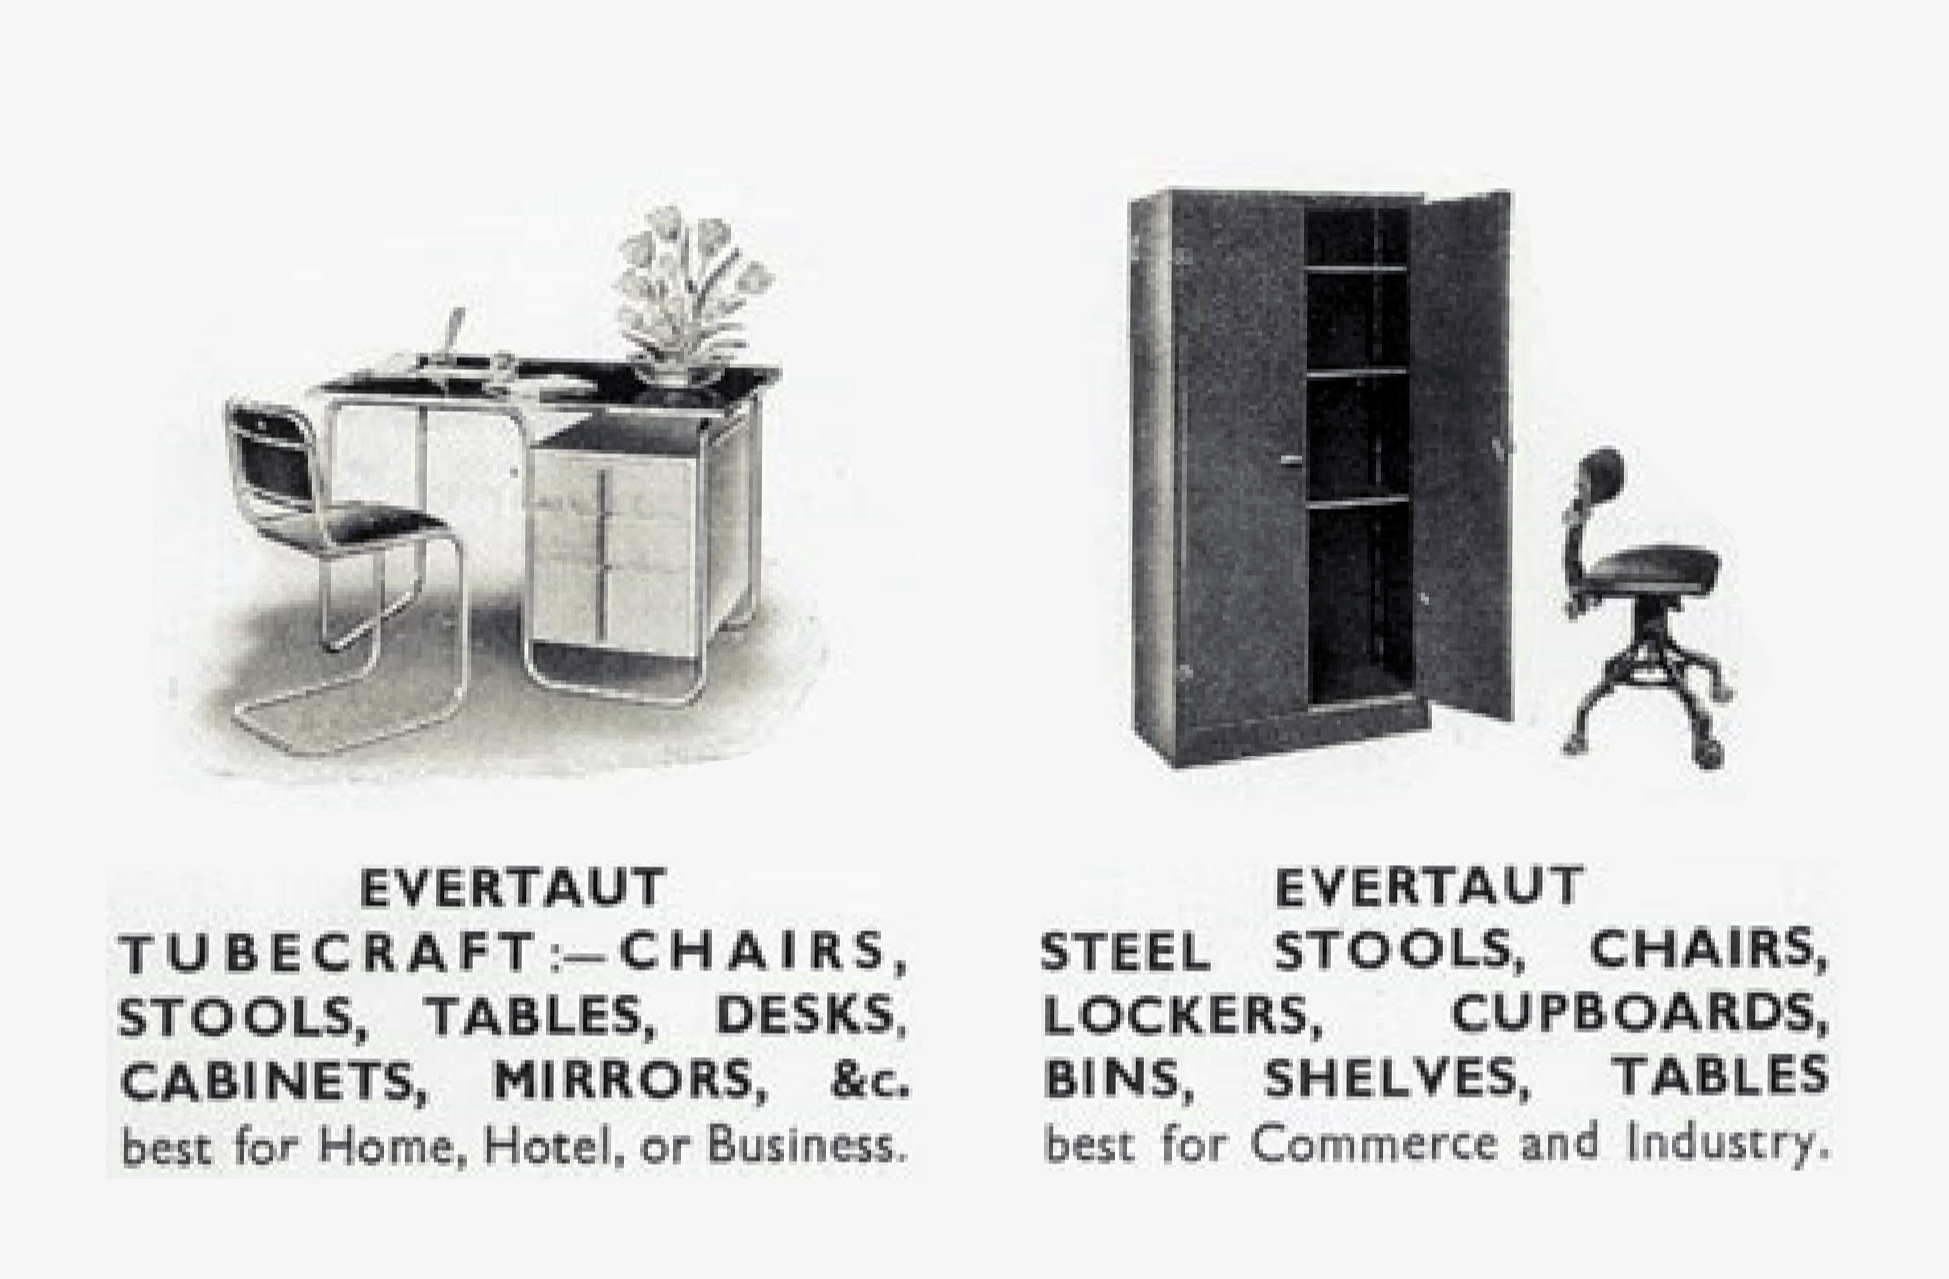 ebykr-brooks-1935-catalog-evertraut-furniture-page-40